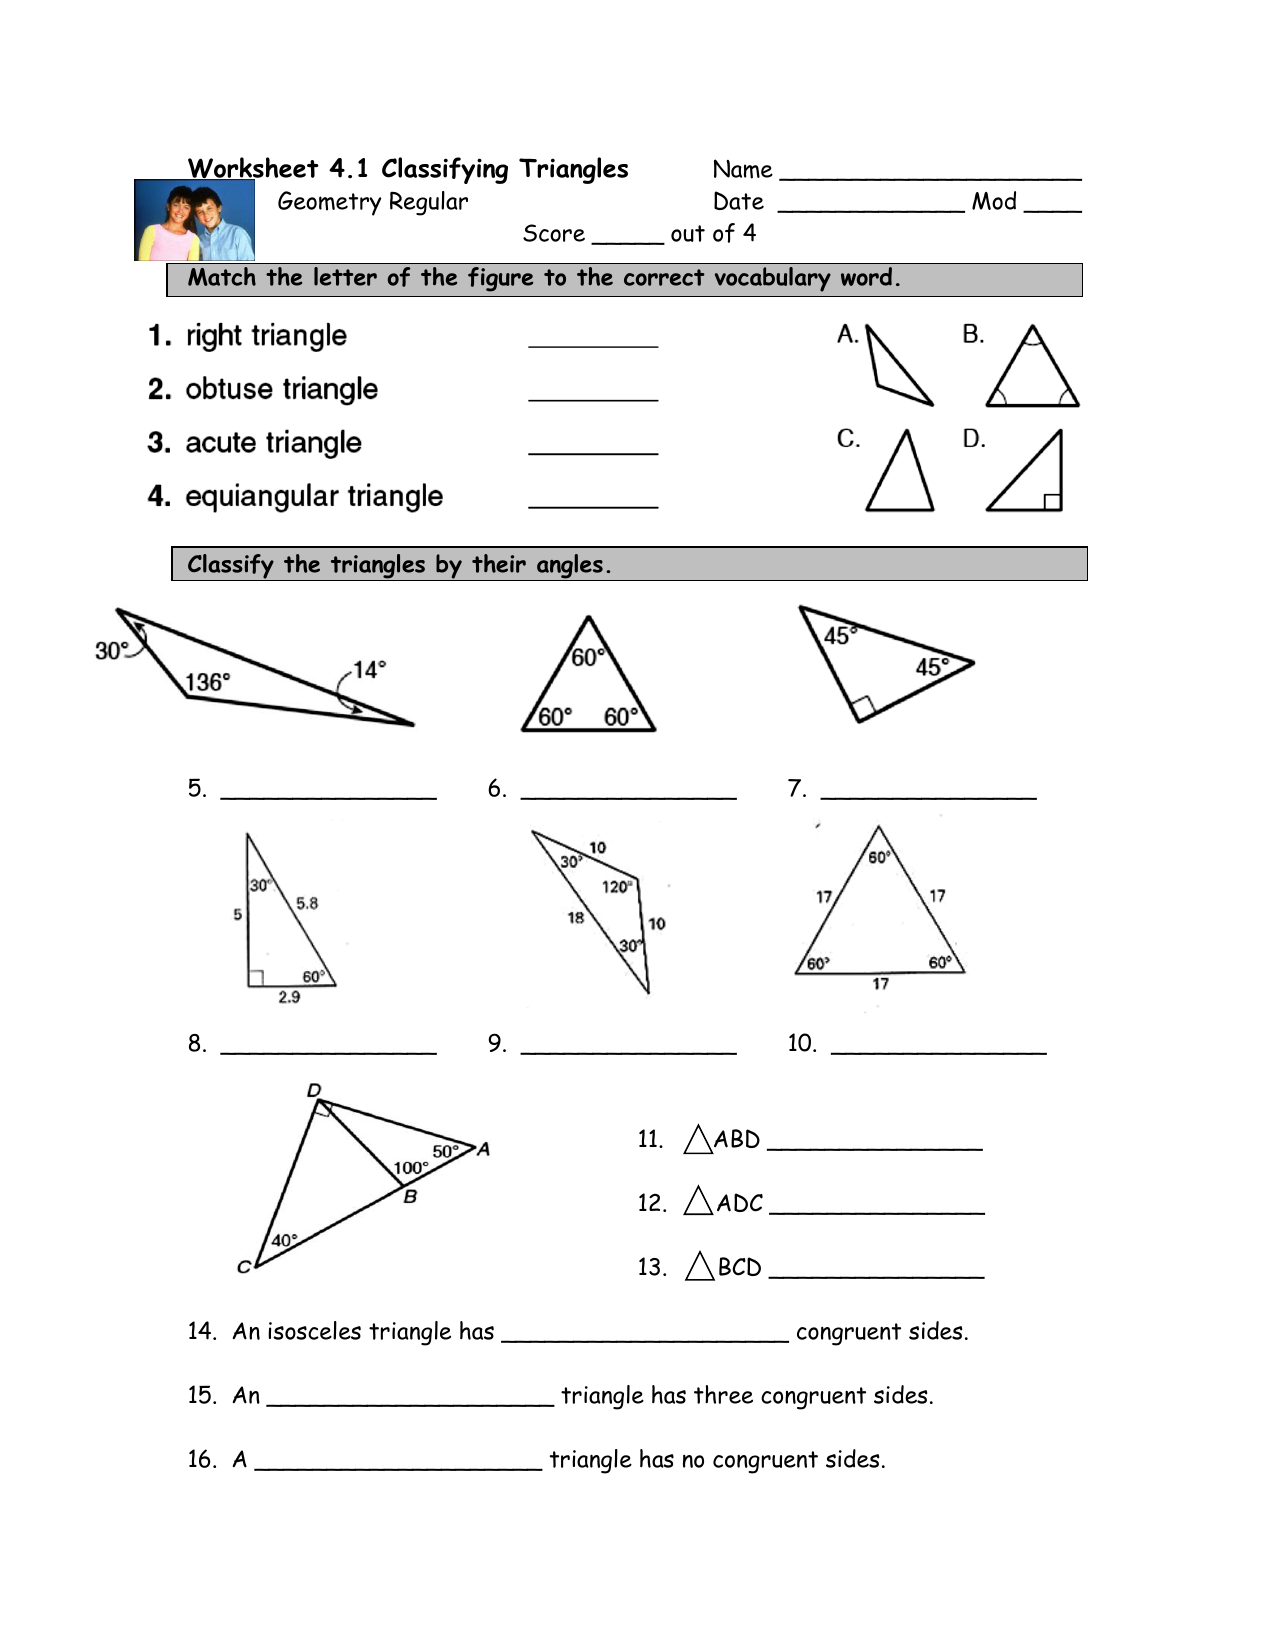 Worksheet 4.1 Classifying Triangles